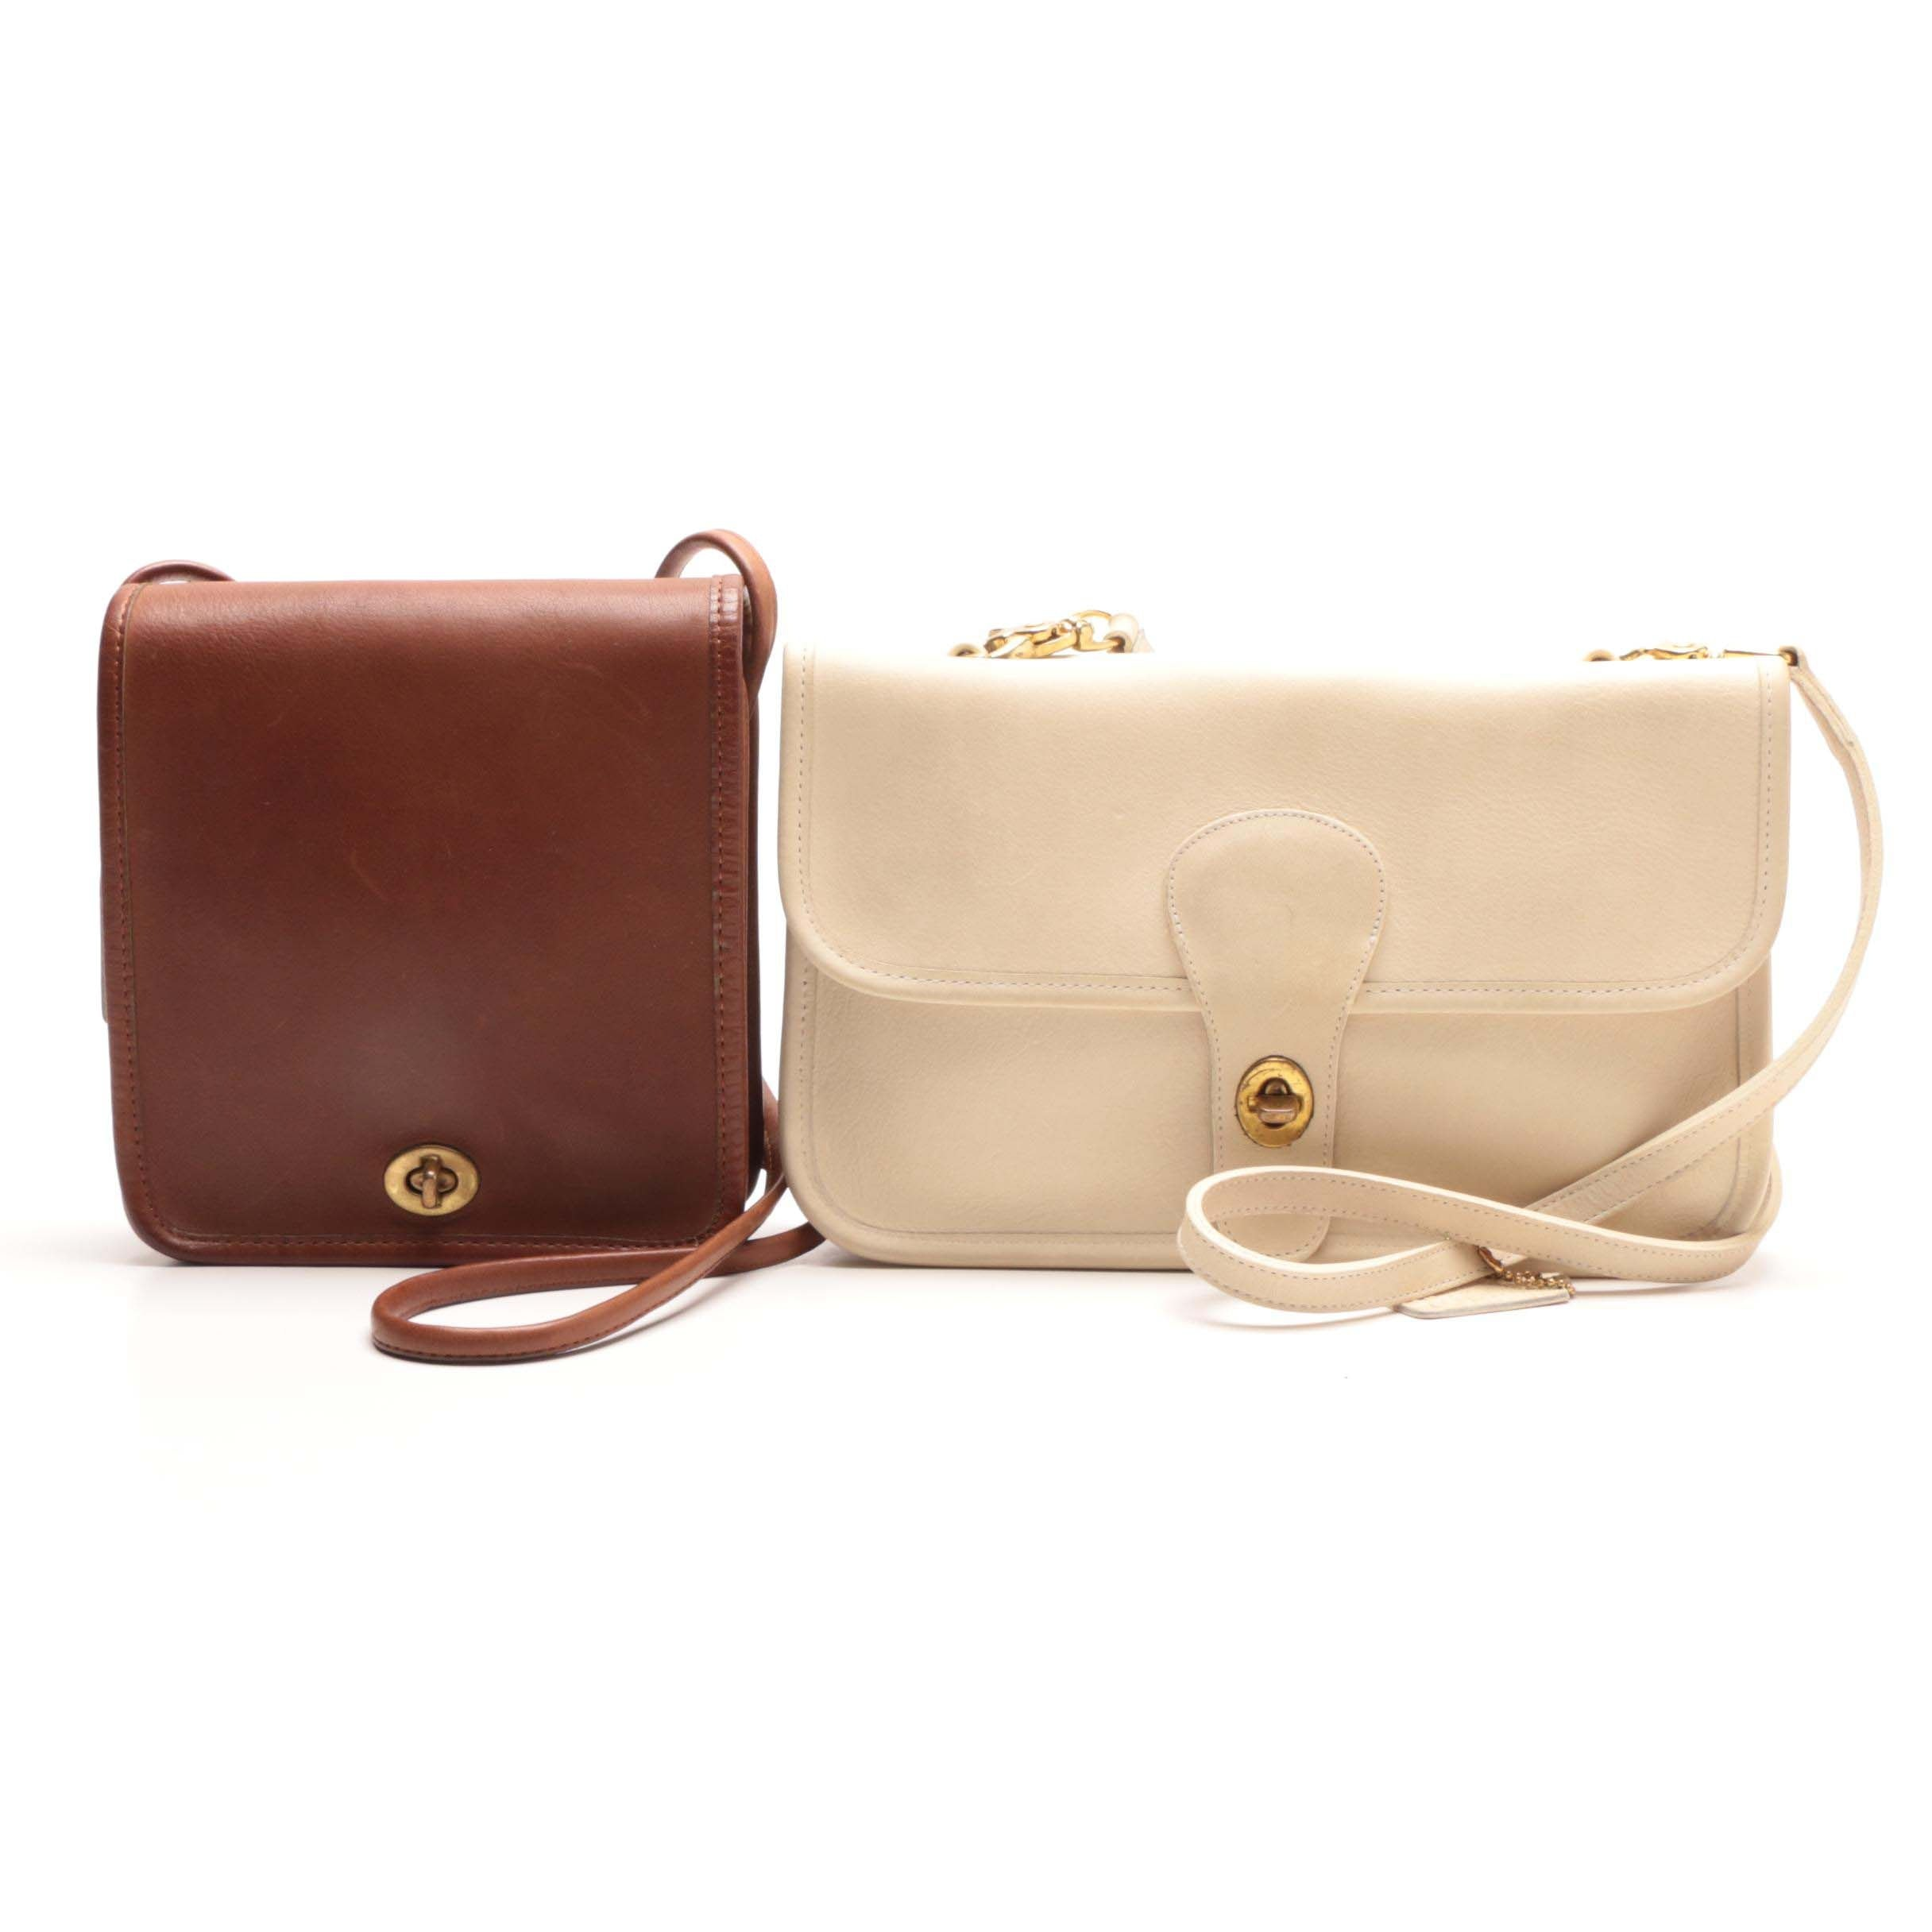 Vintage Coach Rare Twin Clutch in Bone and Compact Pouch Bag in Tabac